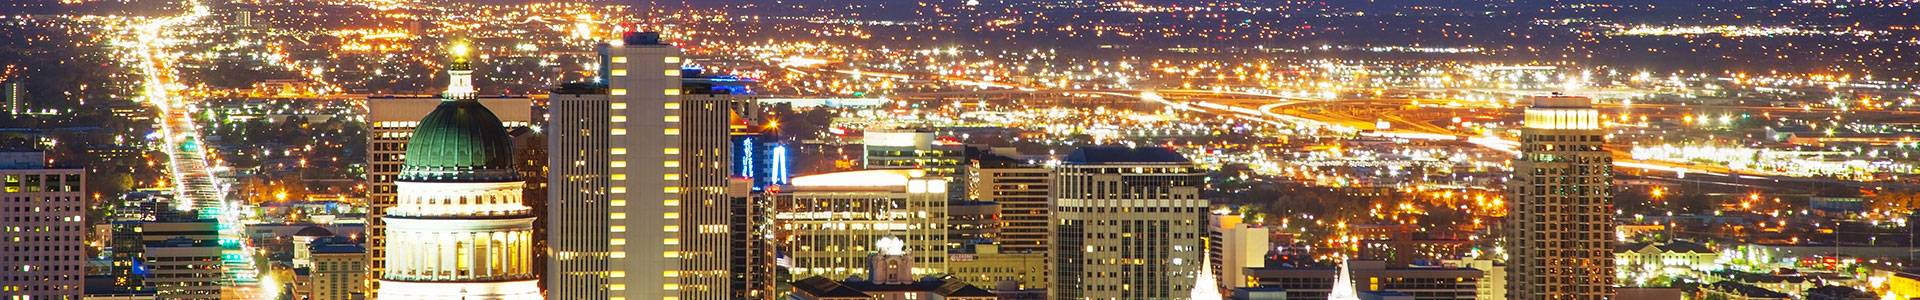 IRR-Salt Lake City: Insights into the Local Market